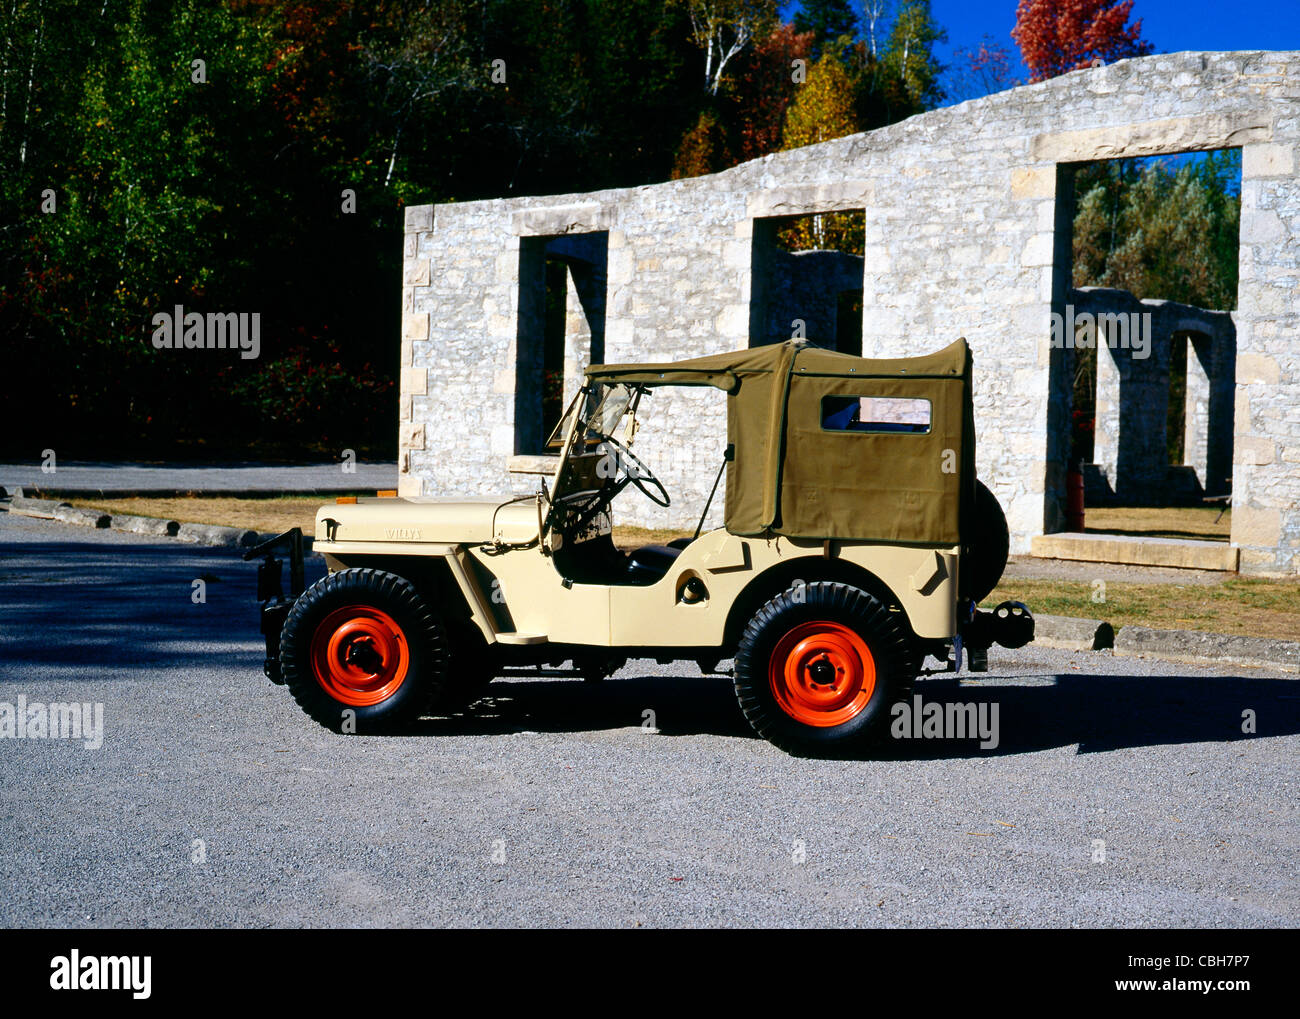 Land Rover Omaha >> Vintage Jeep Stock Photos & Vintage Jeep Stock Images - Alamy